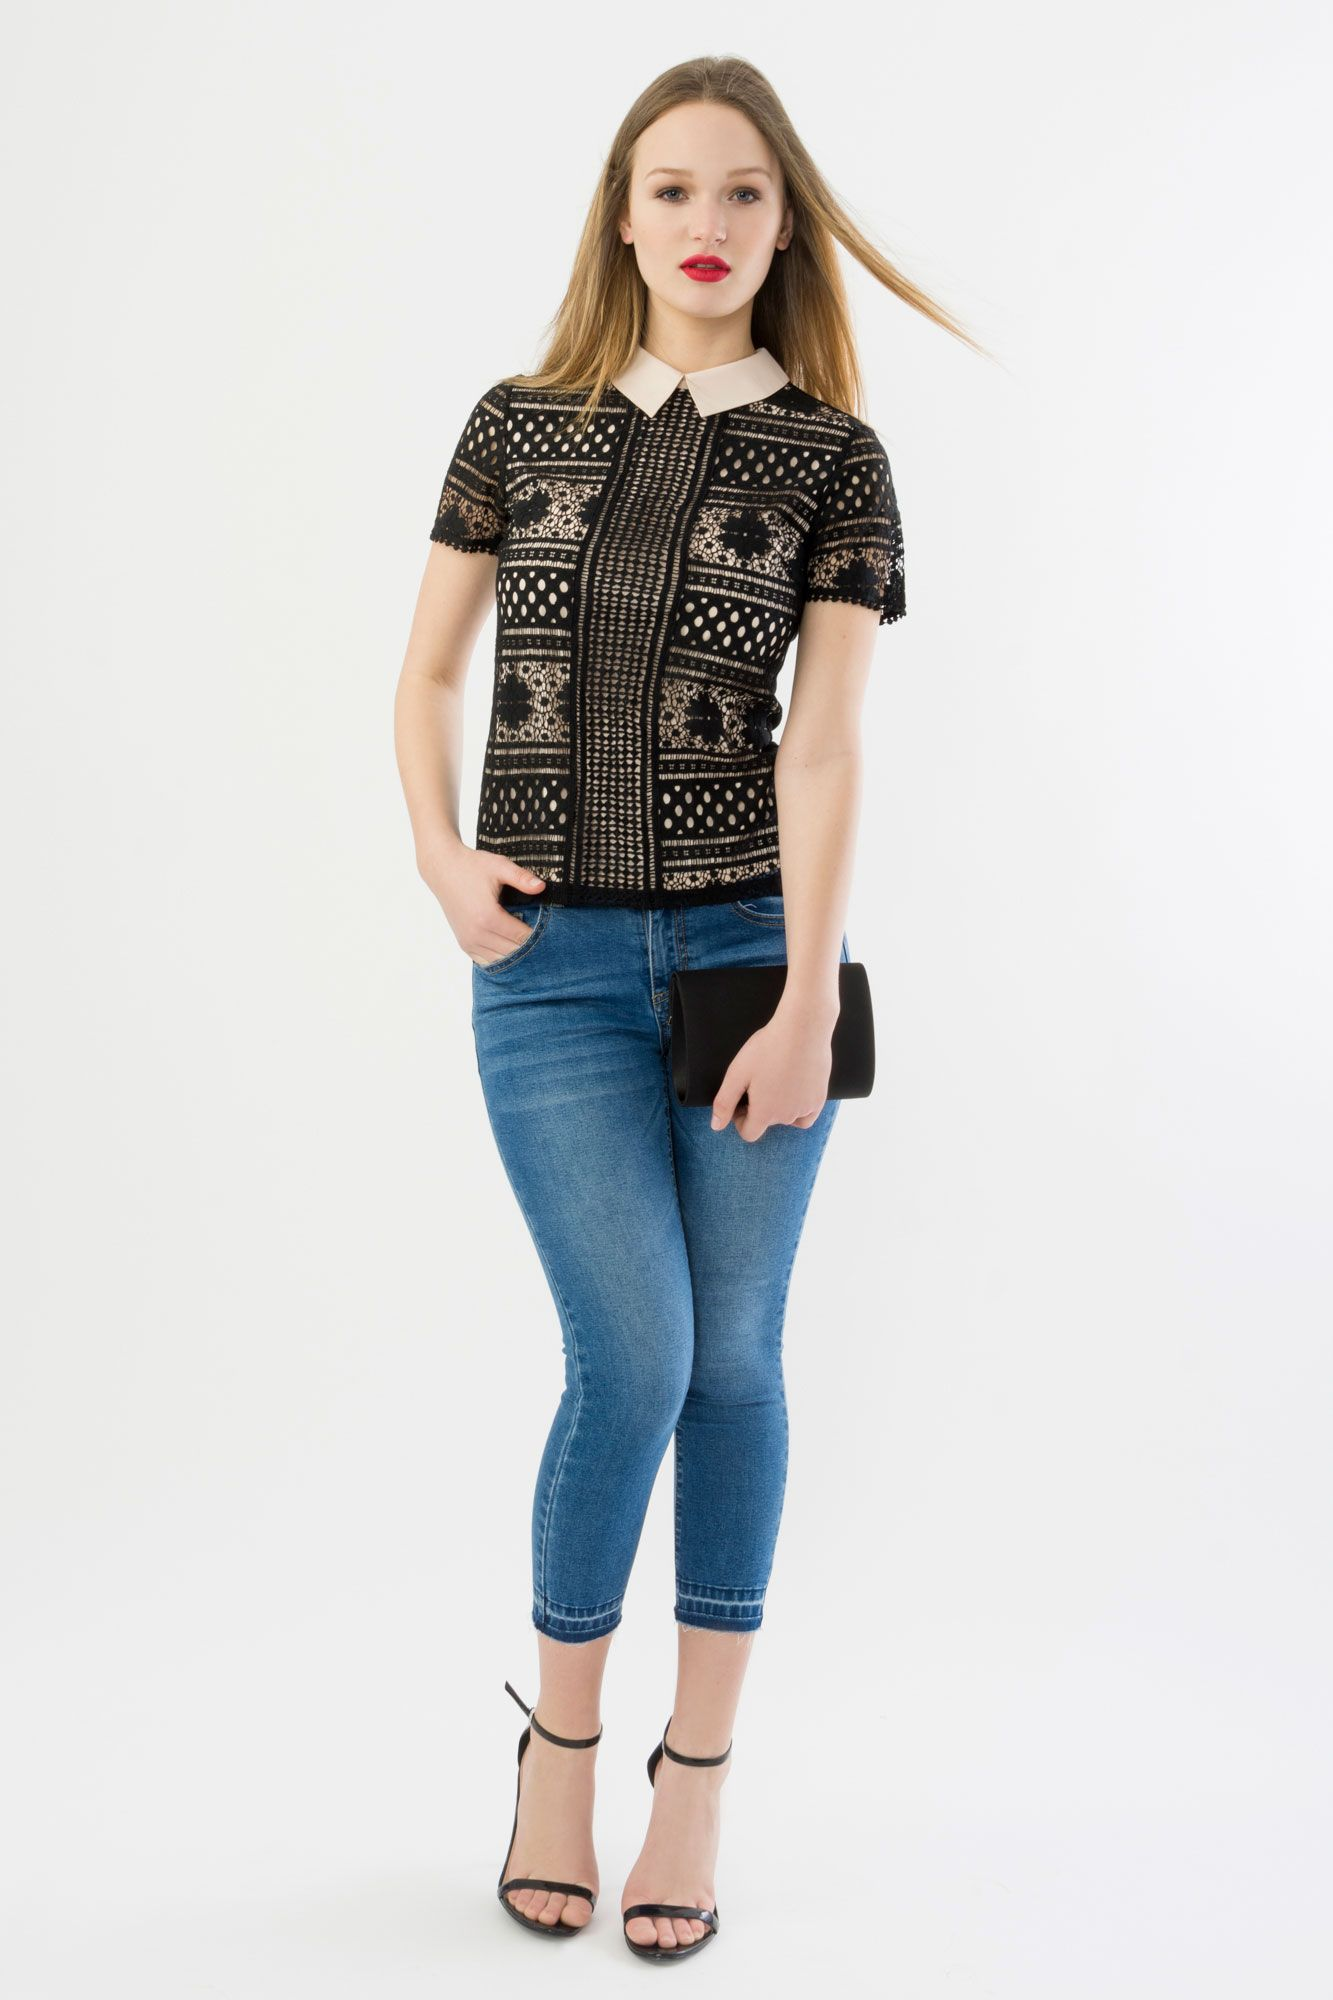 Suzy Shier Lace Top with Contrast Collar